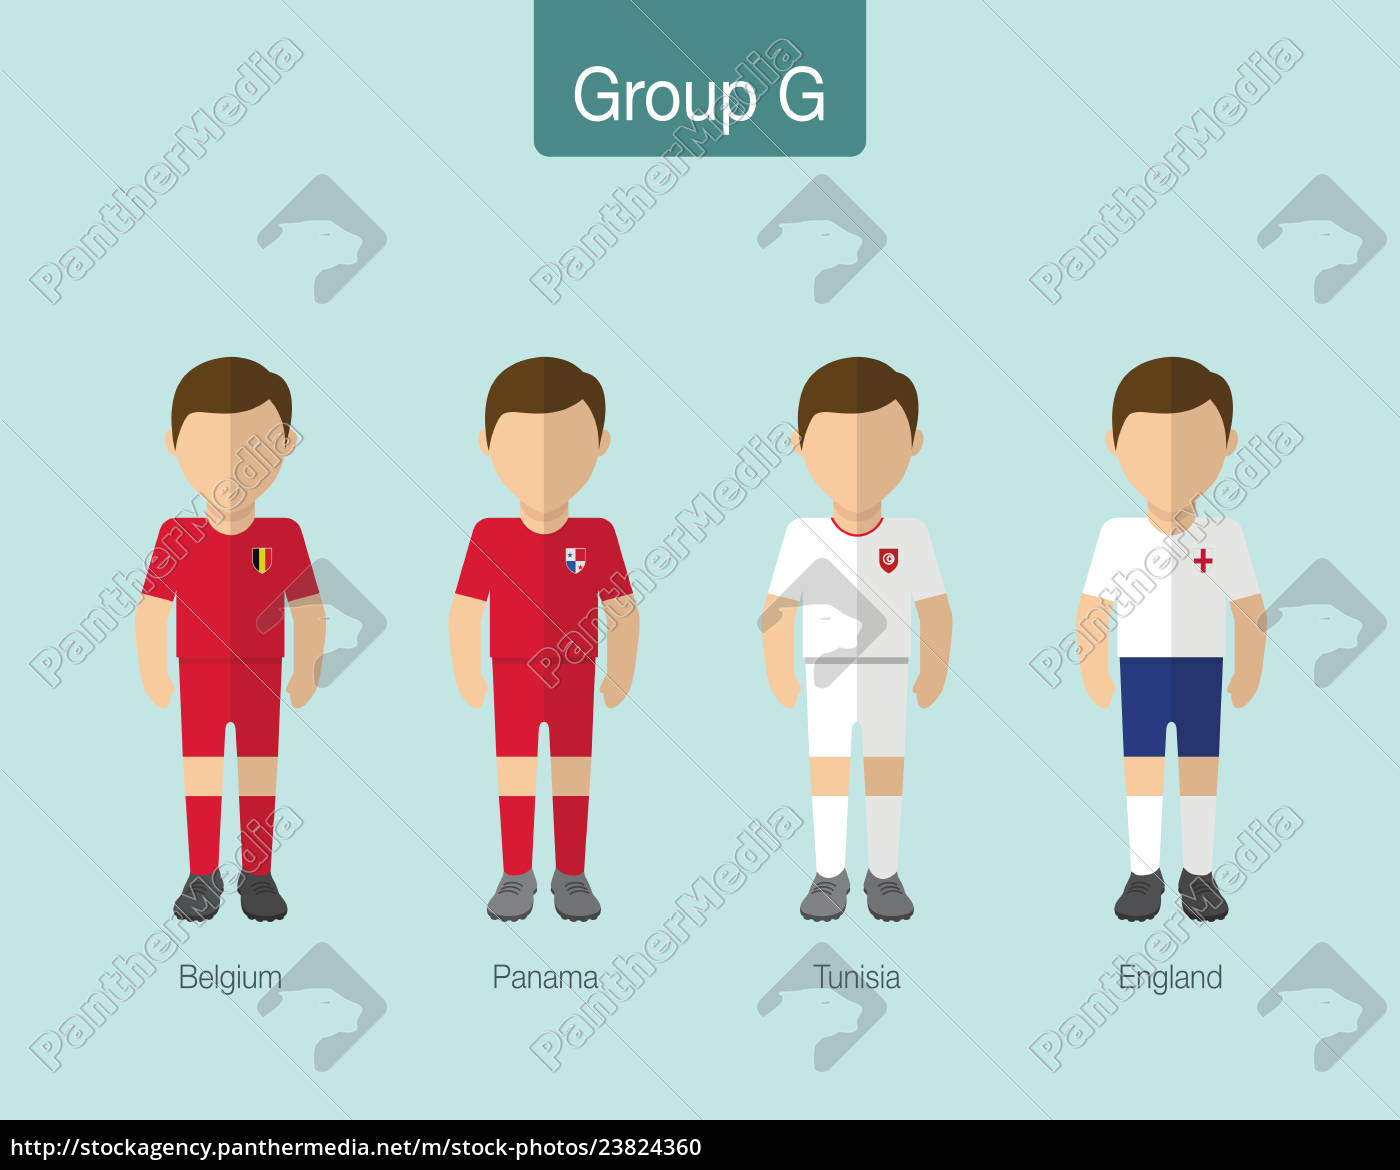 Royalty free vector 23824360 - 2018 Soccer or football team uniform Group G  with BELGIUM